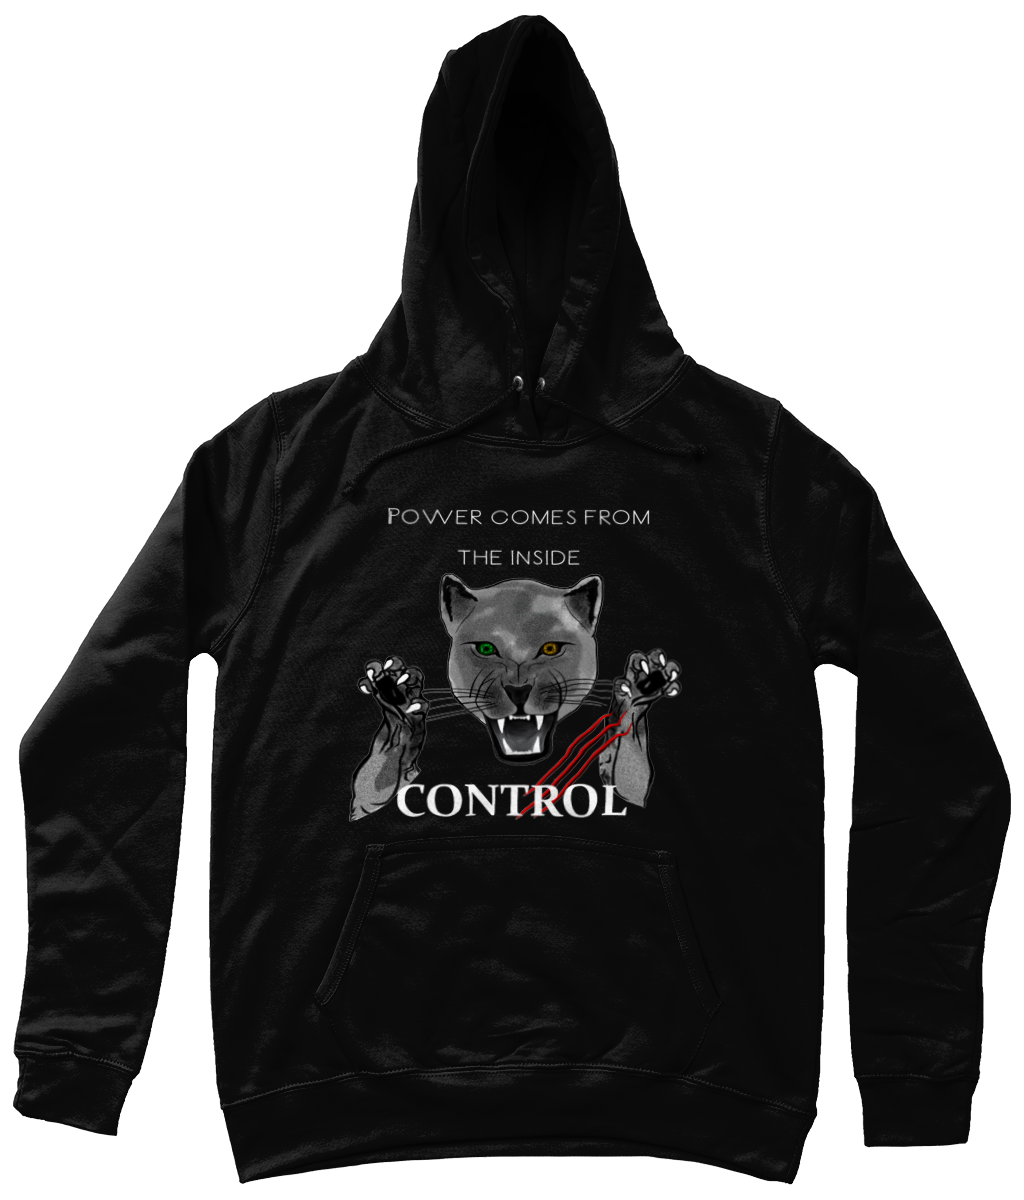 Control yourself - Hoodie Girlie Fit